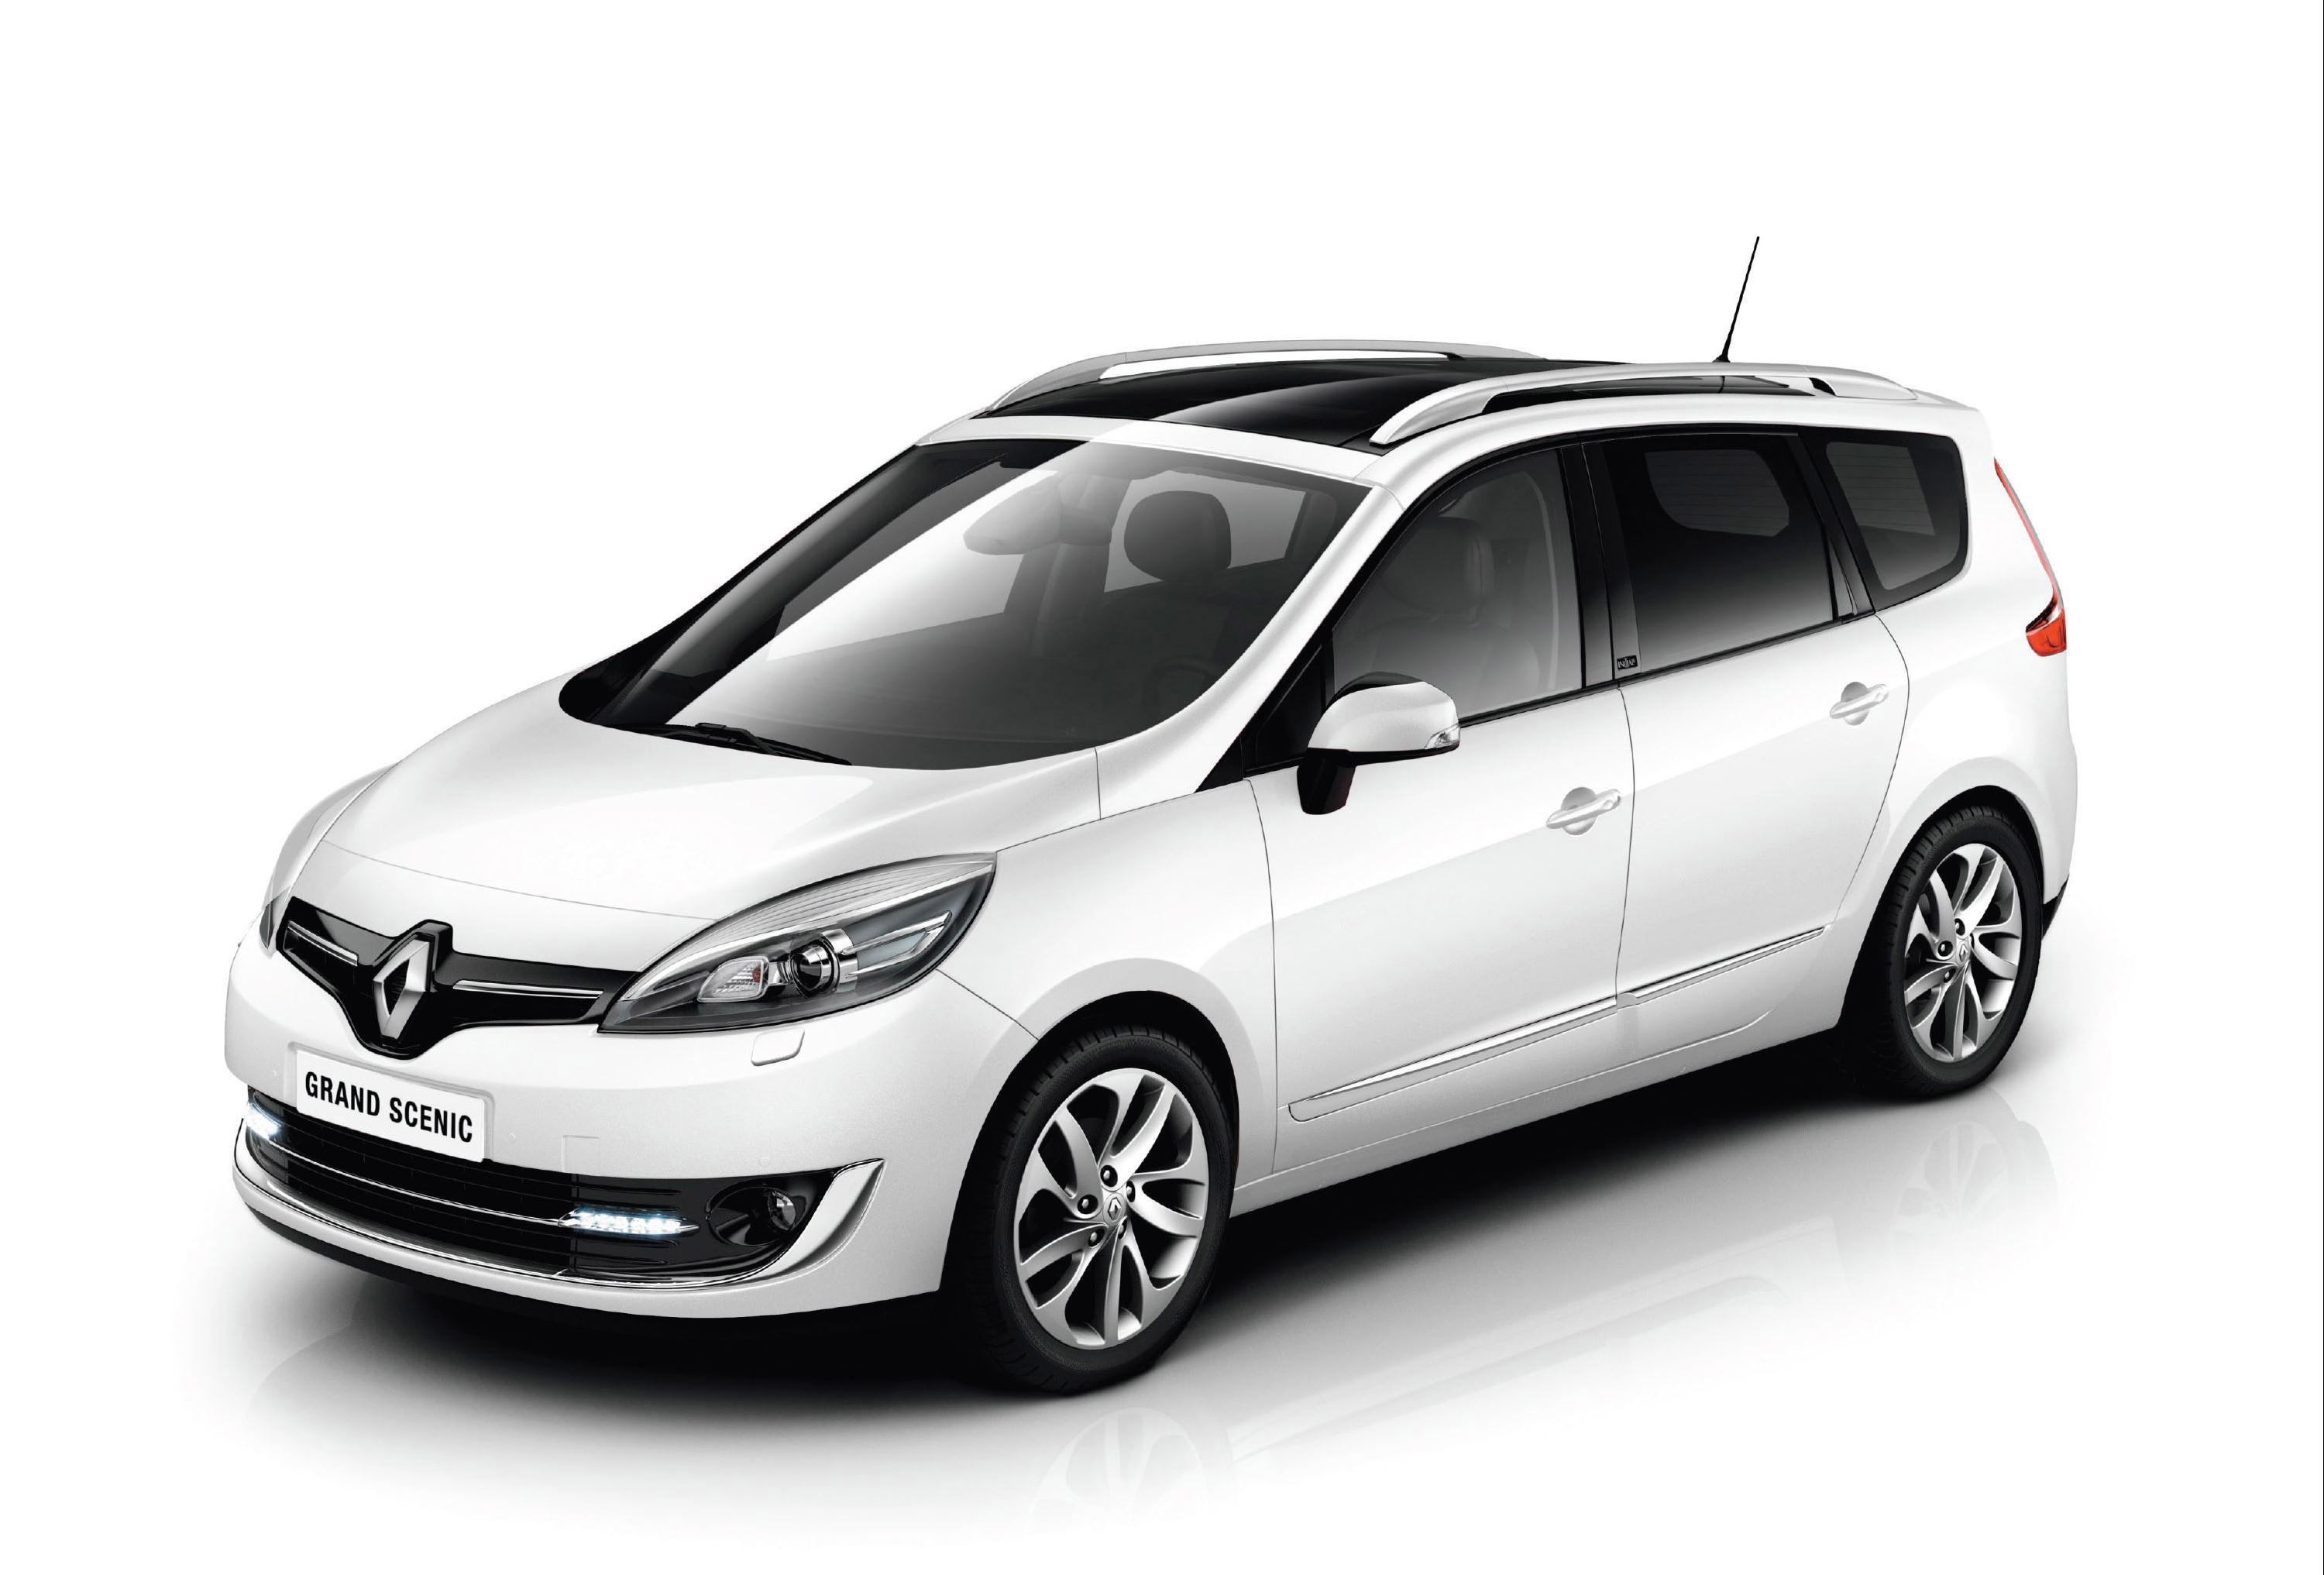 2013 renault scenic xmod uk price 17 955. Black Bedroom Furniture Sets. Home Design Ideas